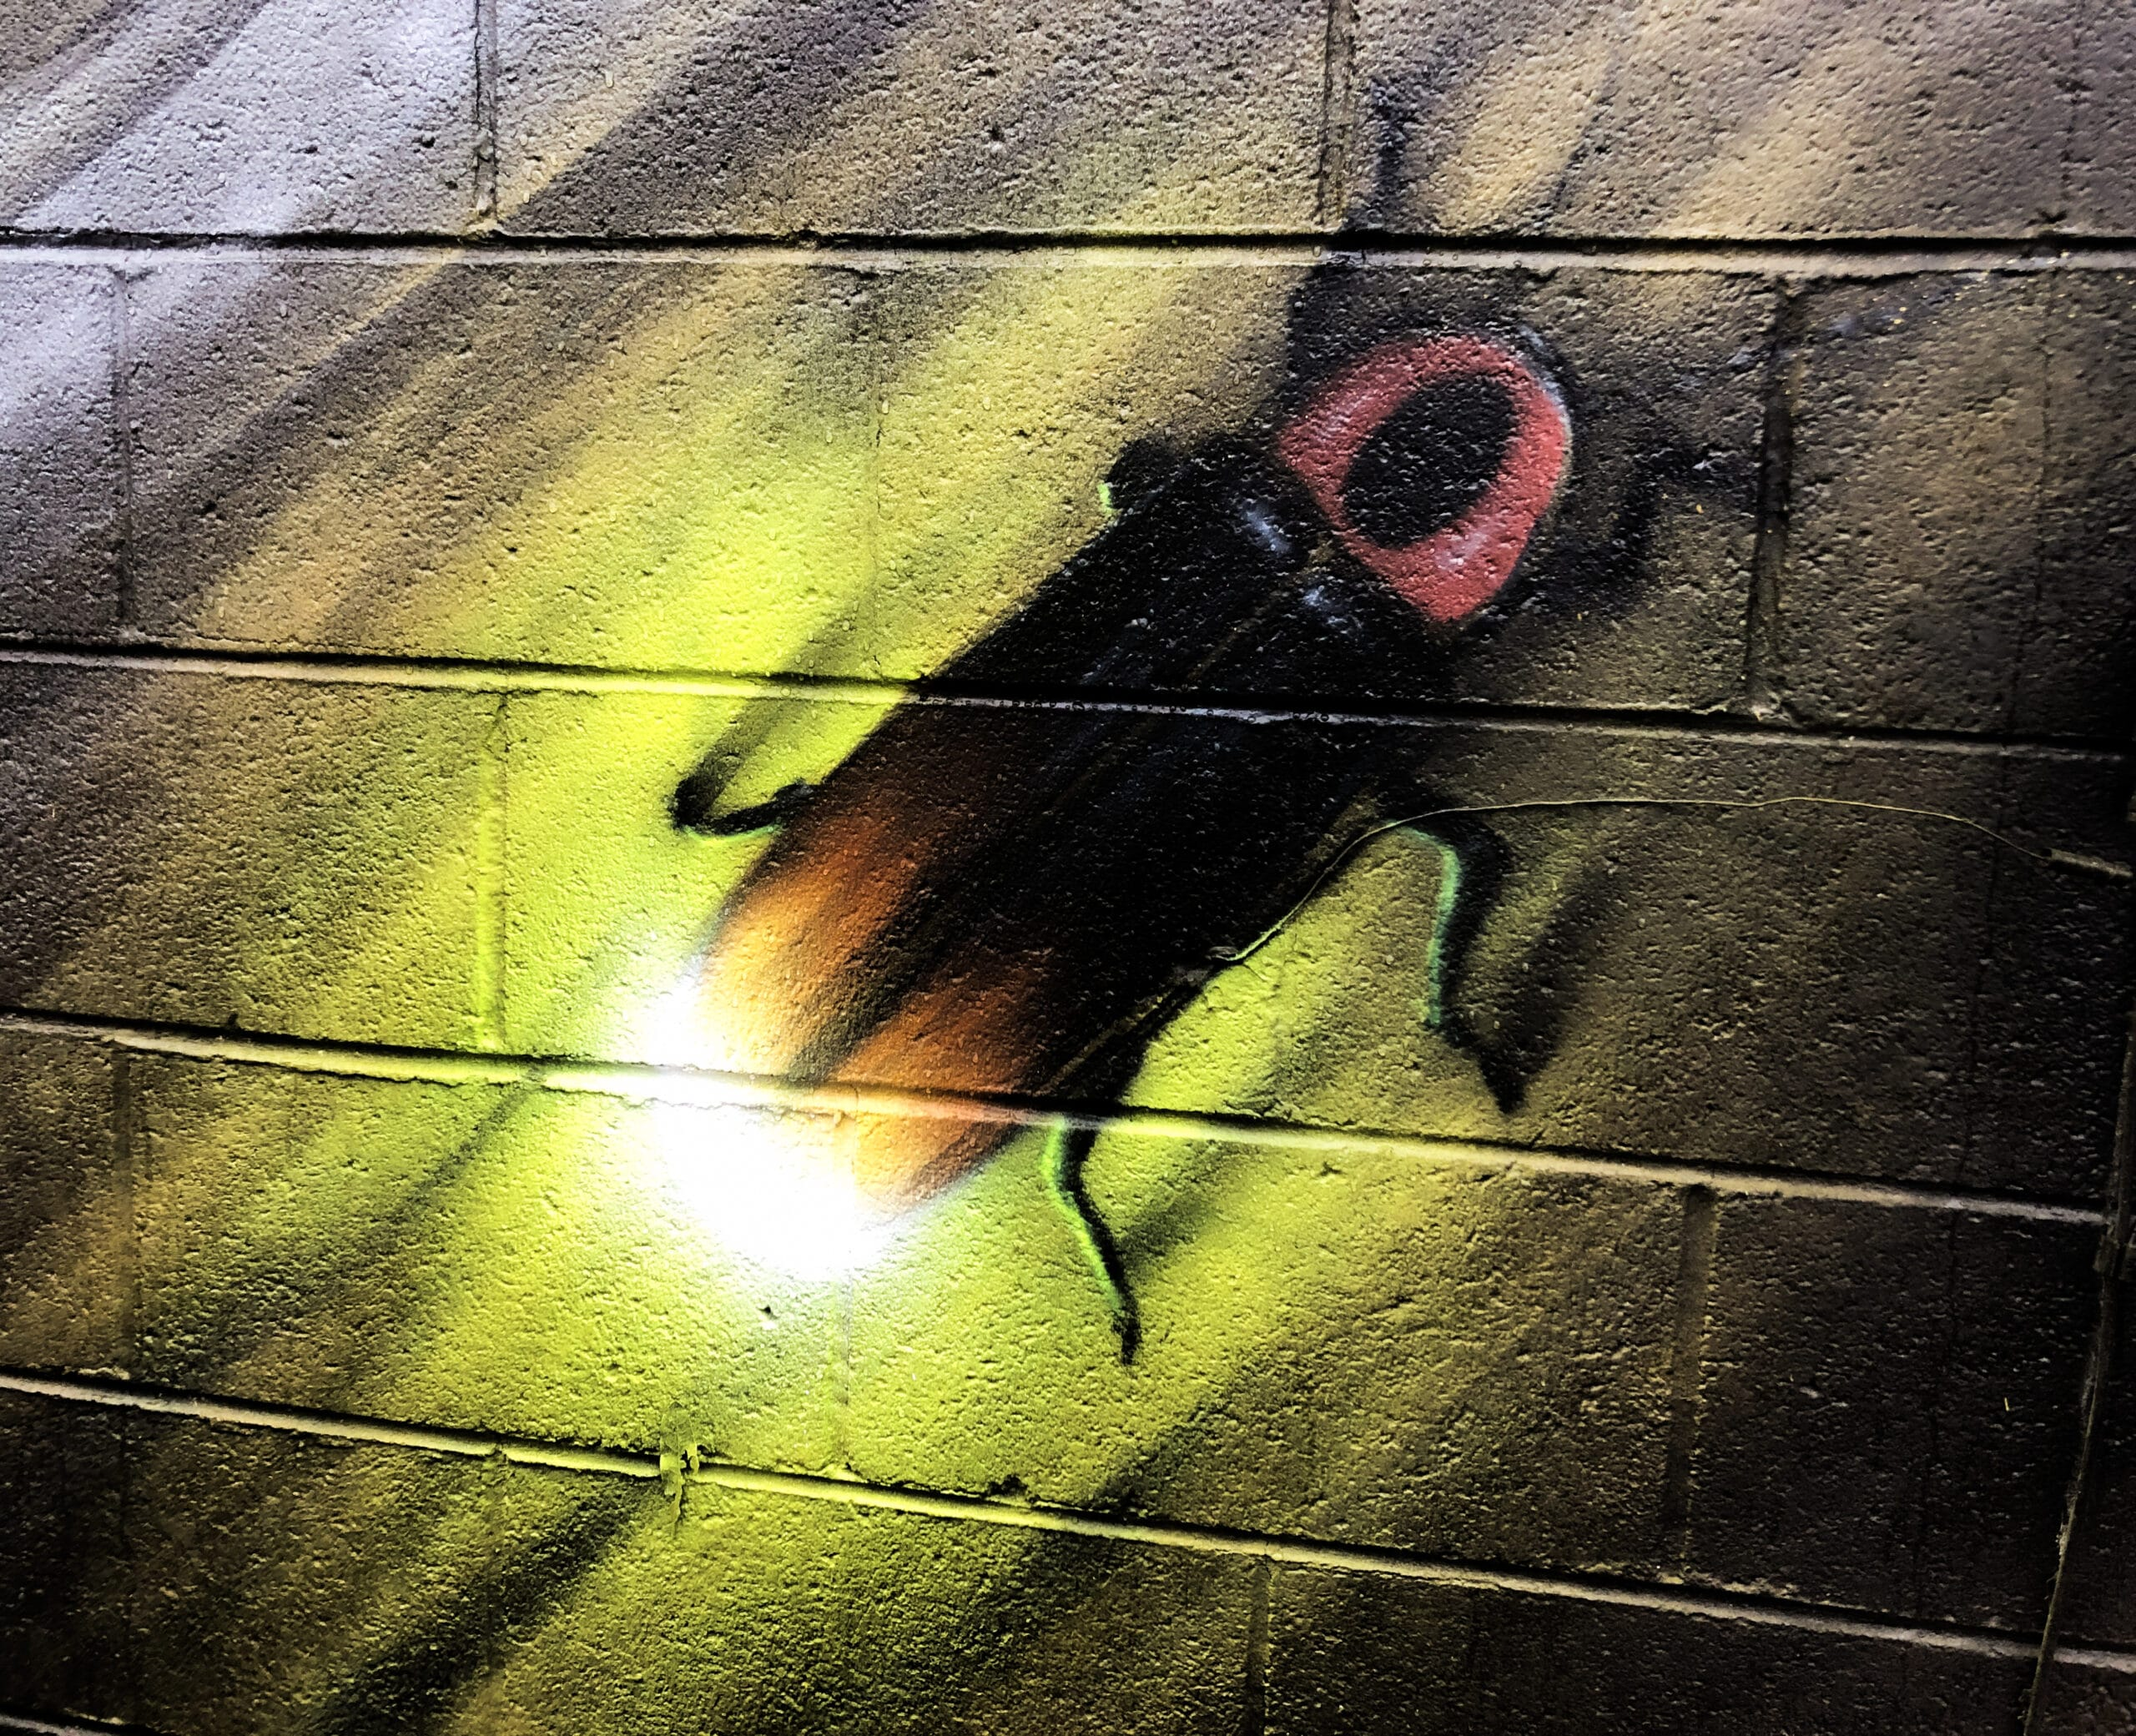 Spray Painted Image of Firefly